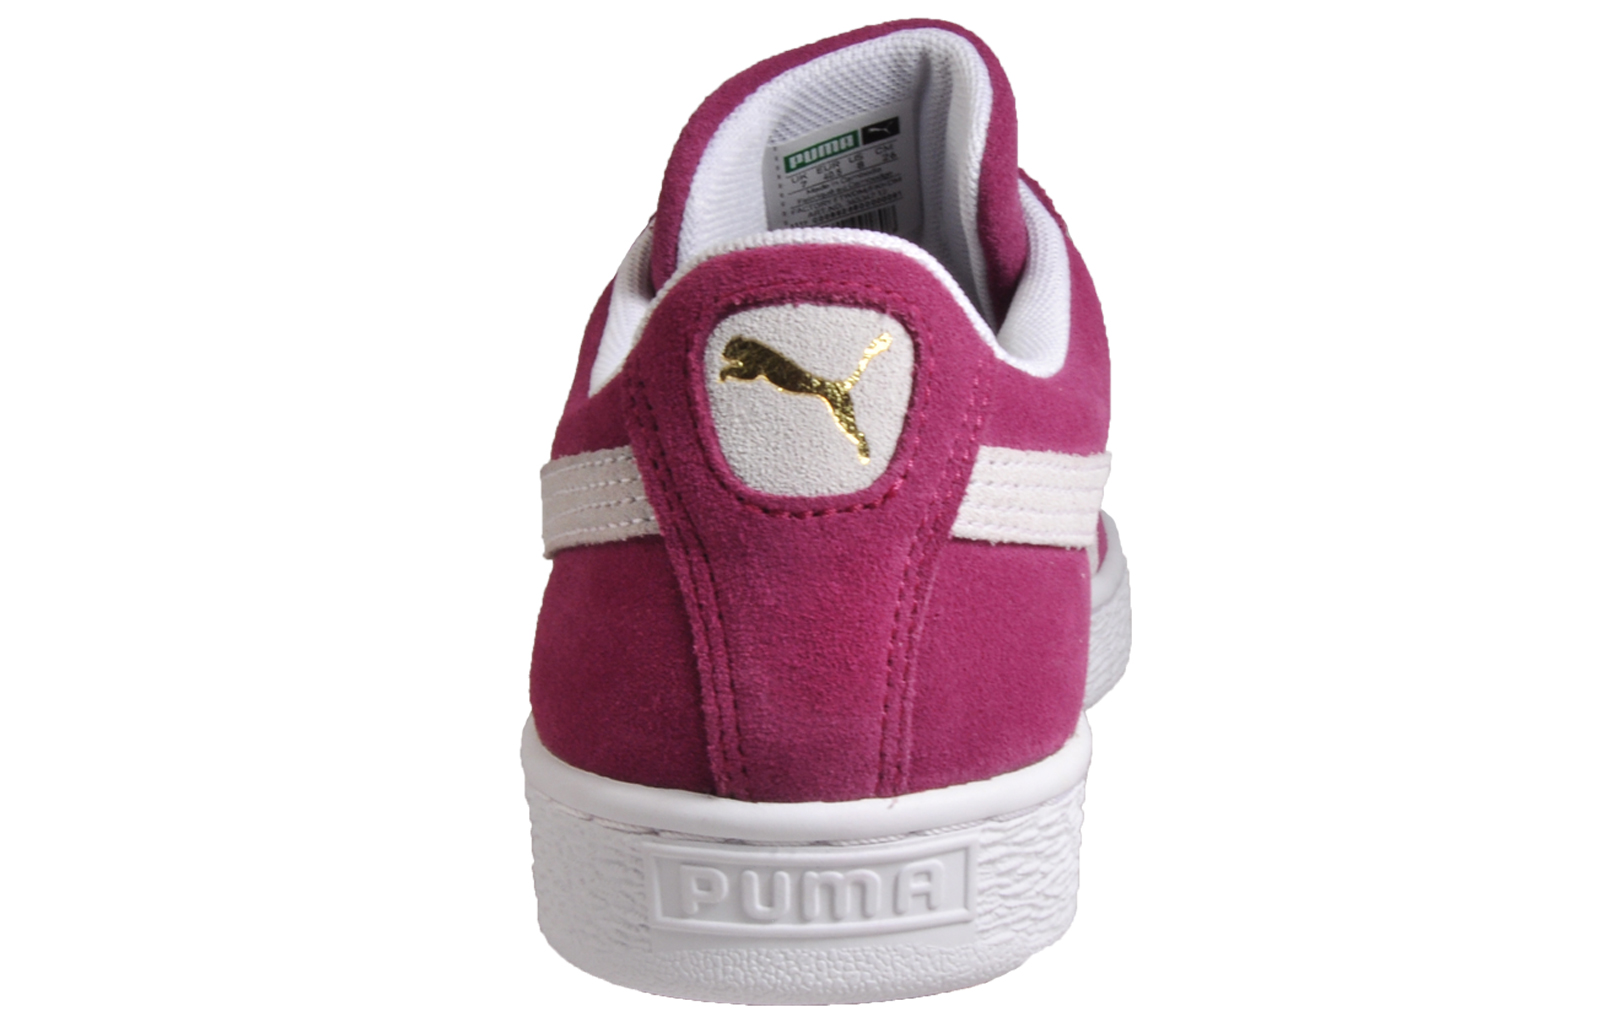 59e38160c24 Puma Suede Leather Men s Lifestyle Classic Casual Vintage Retro Sneakers  Trainers